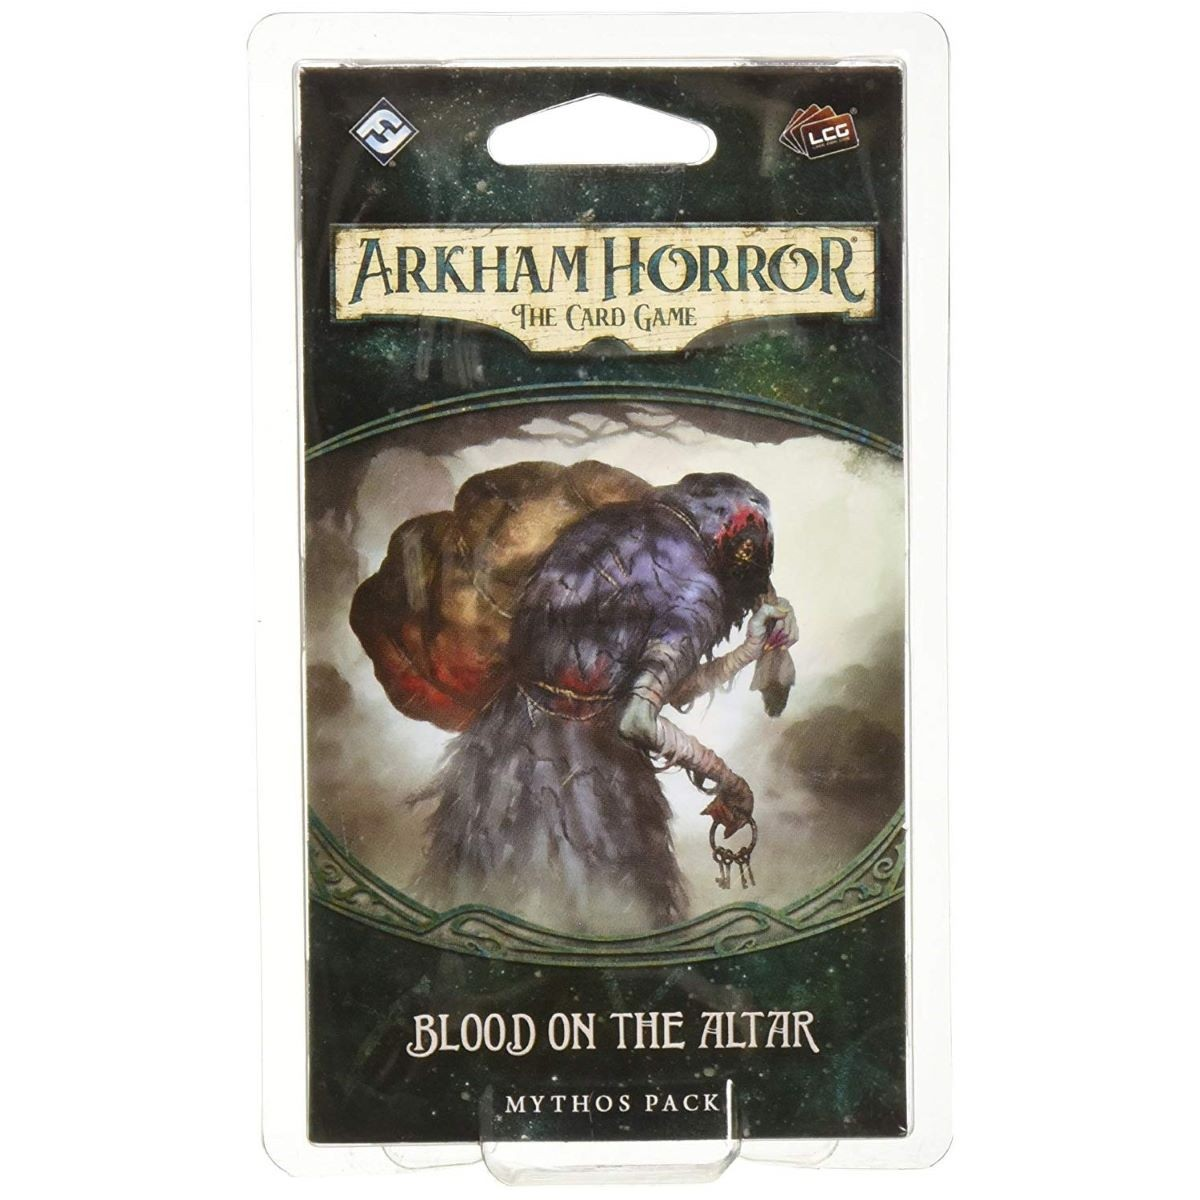 Beyond the Veil - The Arkham Horror Card Game: Blood on the Altar